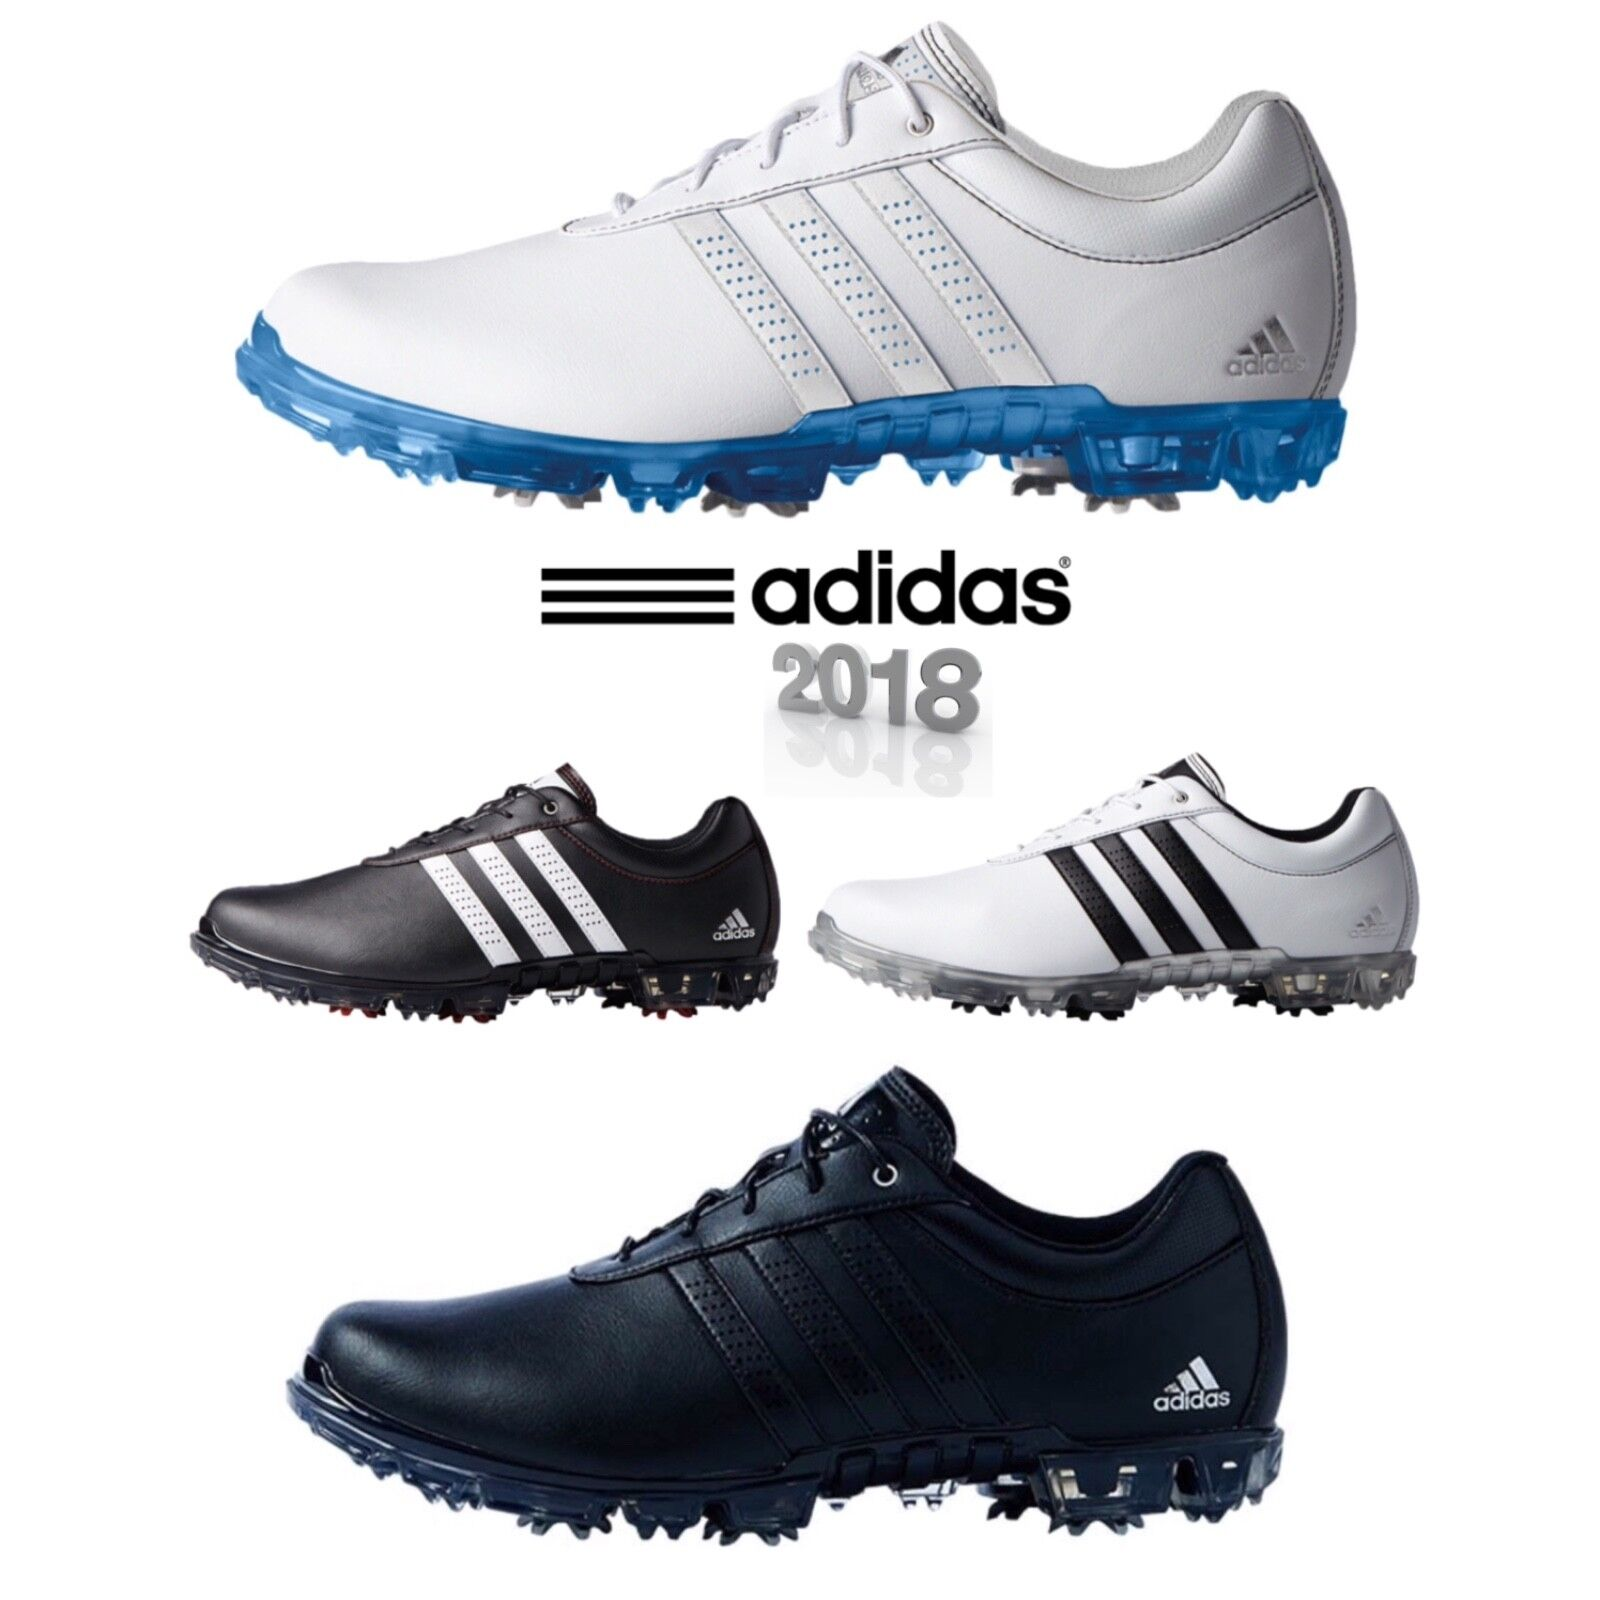 Details about Adidas 2018 Golf Mens Adipure Flex WD Golf Shoes Lightweight  Waterproof